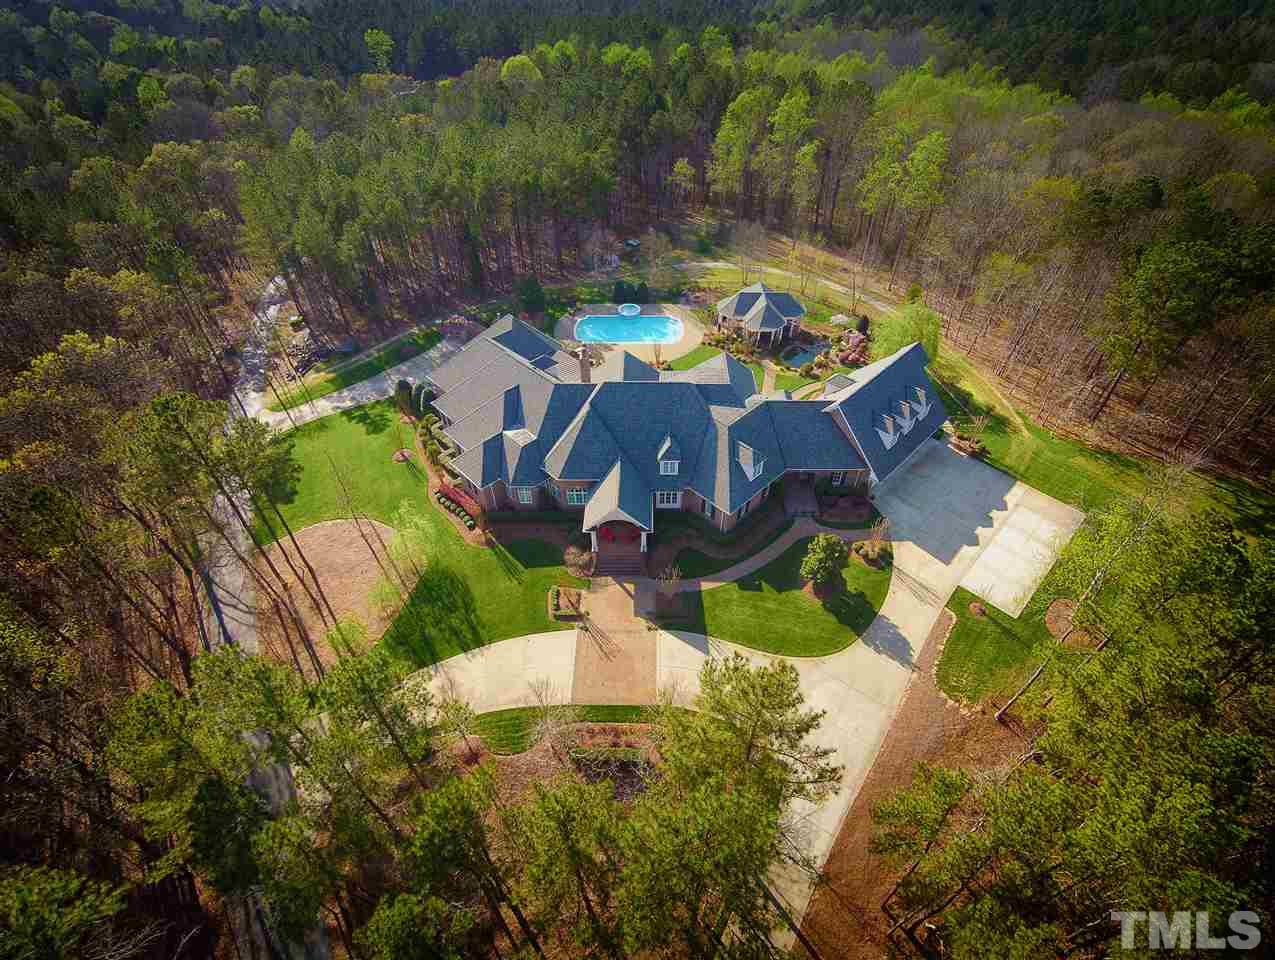 Rare Find! Gorgeous 31+/- Acre Estate Located On Wake / Durham Cty Line. This Exceptional Property is Just Minutes from Falls Lake w/ Easy Access to Raleigh & Durham. Custom 5 BR, 7 BA Home Offers Amenities including Open Floor Plan, Stunning Living Room, Huge Chef's Kitchen, 1st Floor Master Wing w/  Office, Exercise Room, Study & Huge His / Hers W/I Closets. A 4 Car Garage w/ Bathroom, Outdoor Loggia Overlooks Pool & Custom Waterfall & Koi Pond.  The Areas Finest Custom Estate on 31 Acres of Privacy!